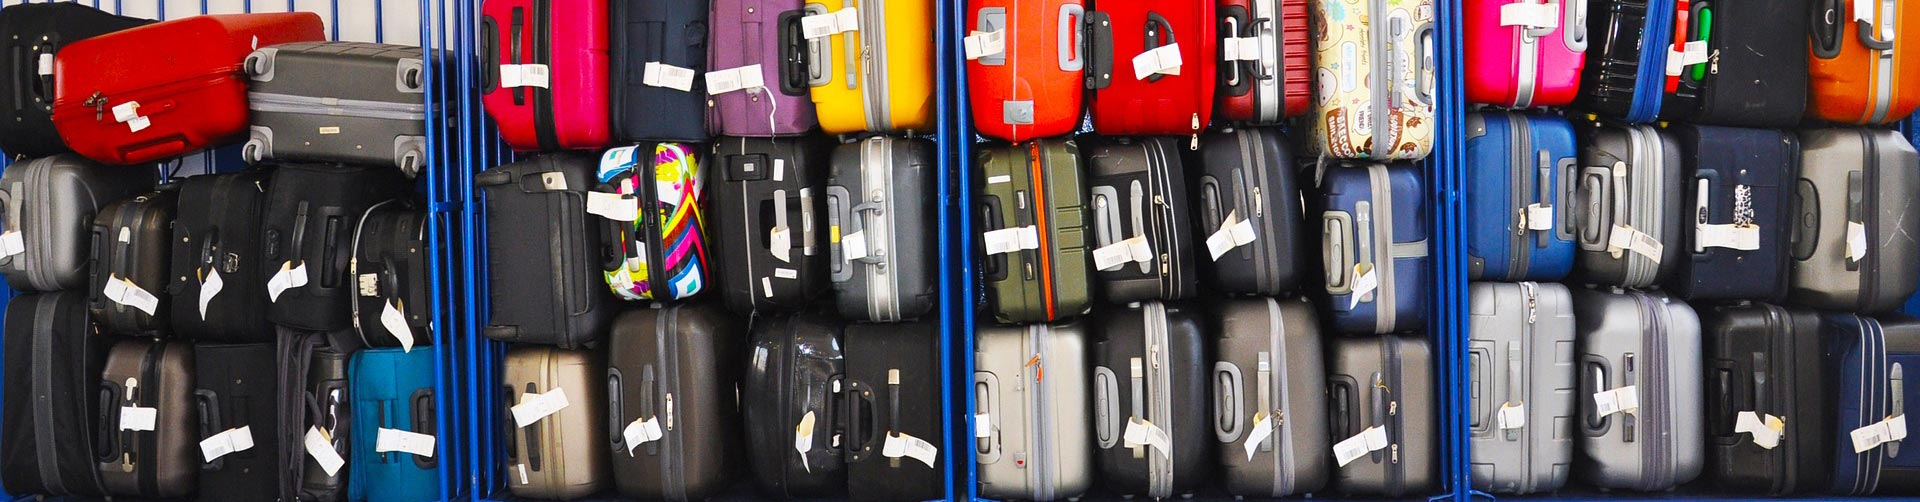 5 Best Luggage Sets for Your Next Vacation | Savored Journeys